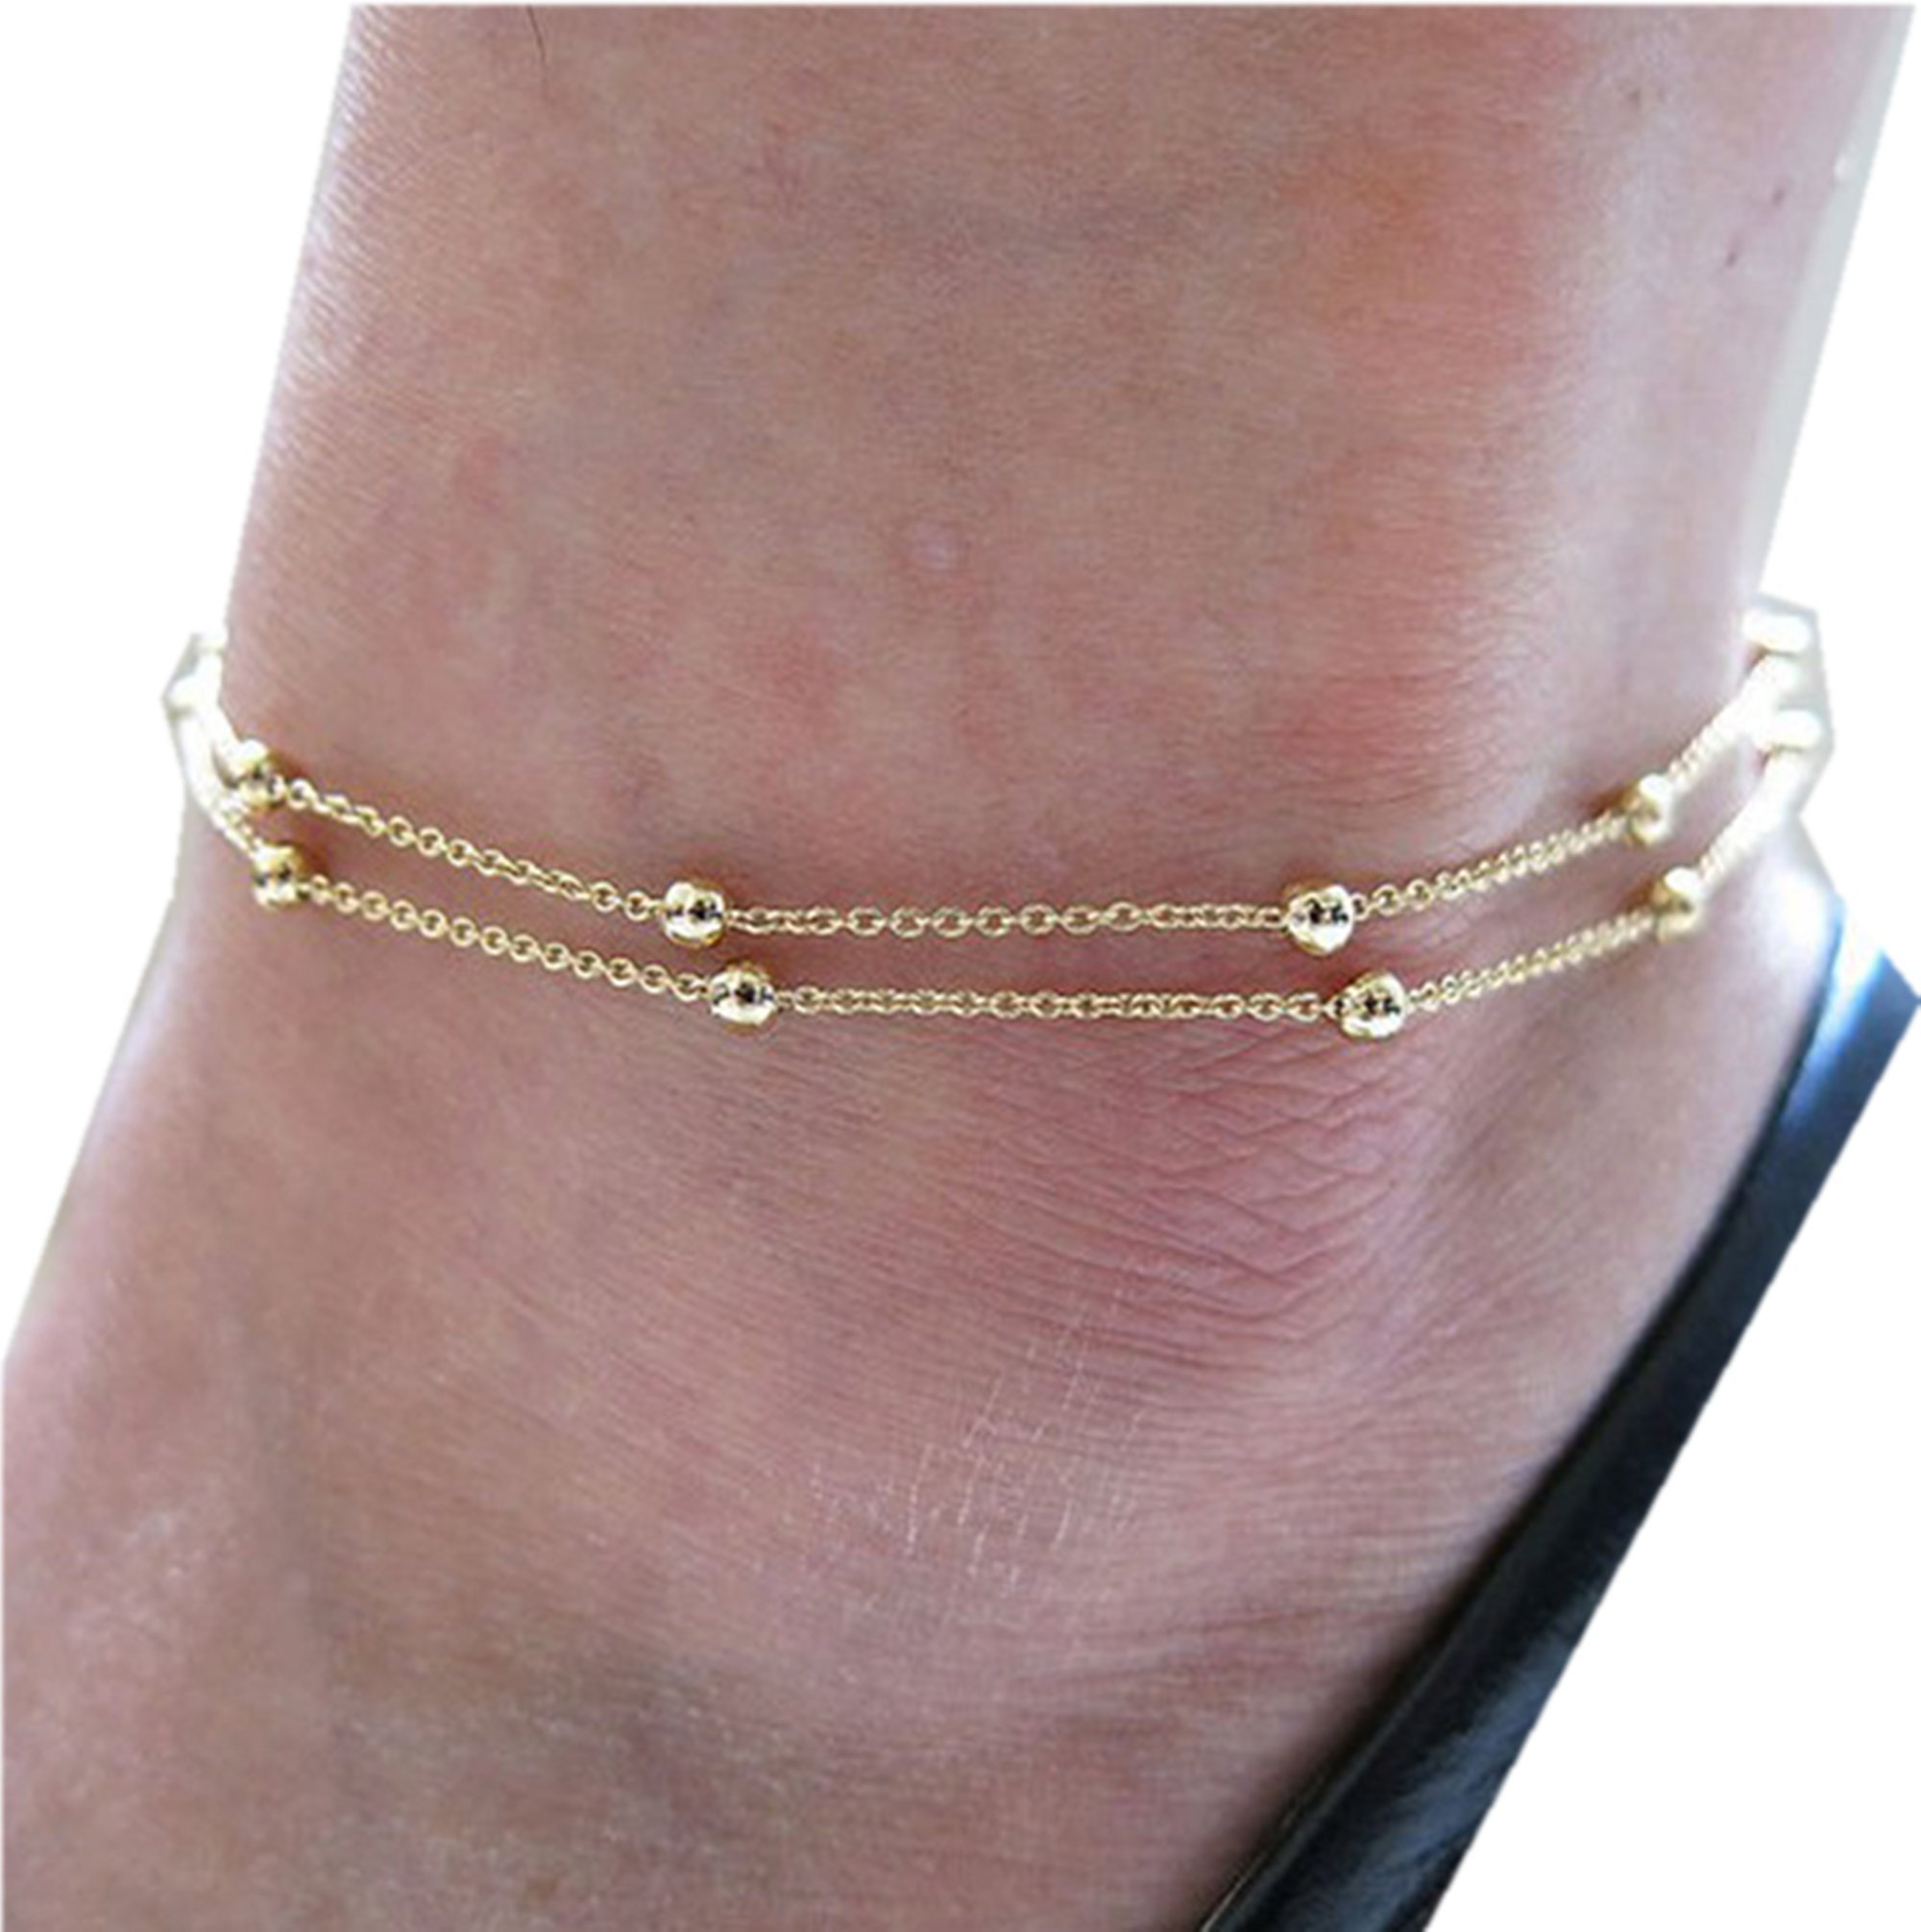 inch collections plated products bead ion steel heart bracelet ankle charm jewelry stainless model gold rhoidum sterling silver s g rhodium finish and bracelets anklet diamond cut photo wholesale chain